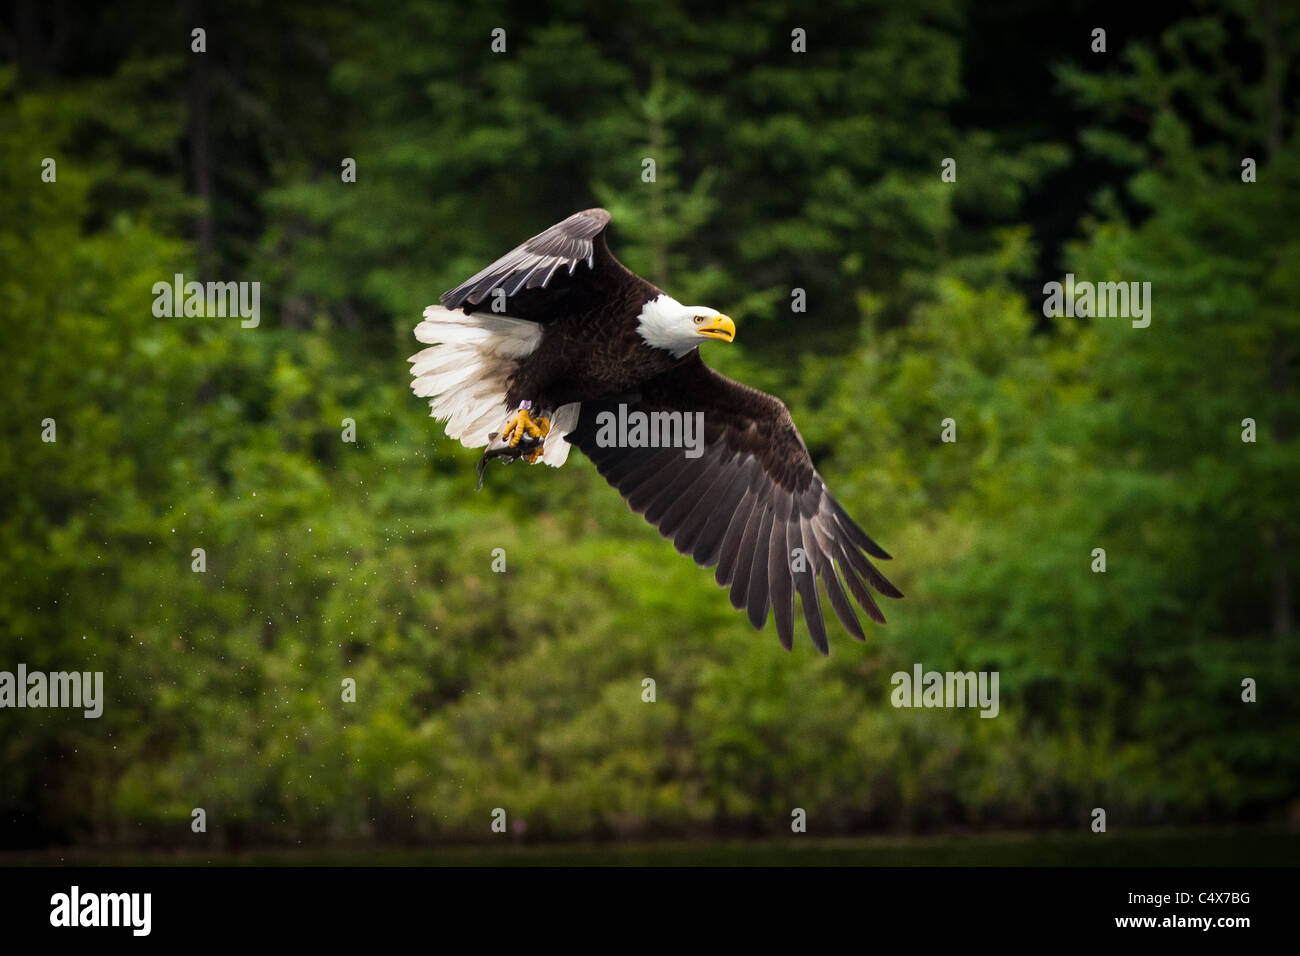 American bald eagle (Haliaeetus leucocephalus) in flight with fish Boulder Junction, Wisconsin. - Stock Image